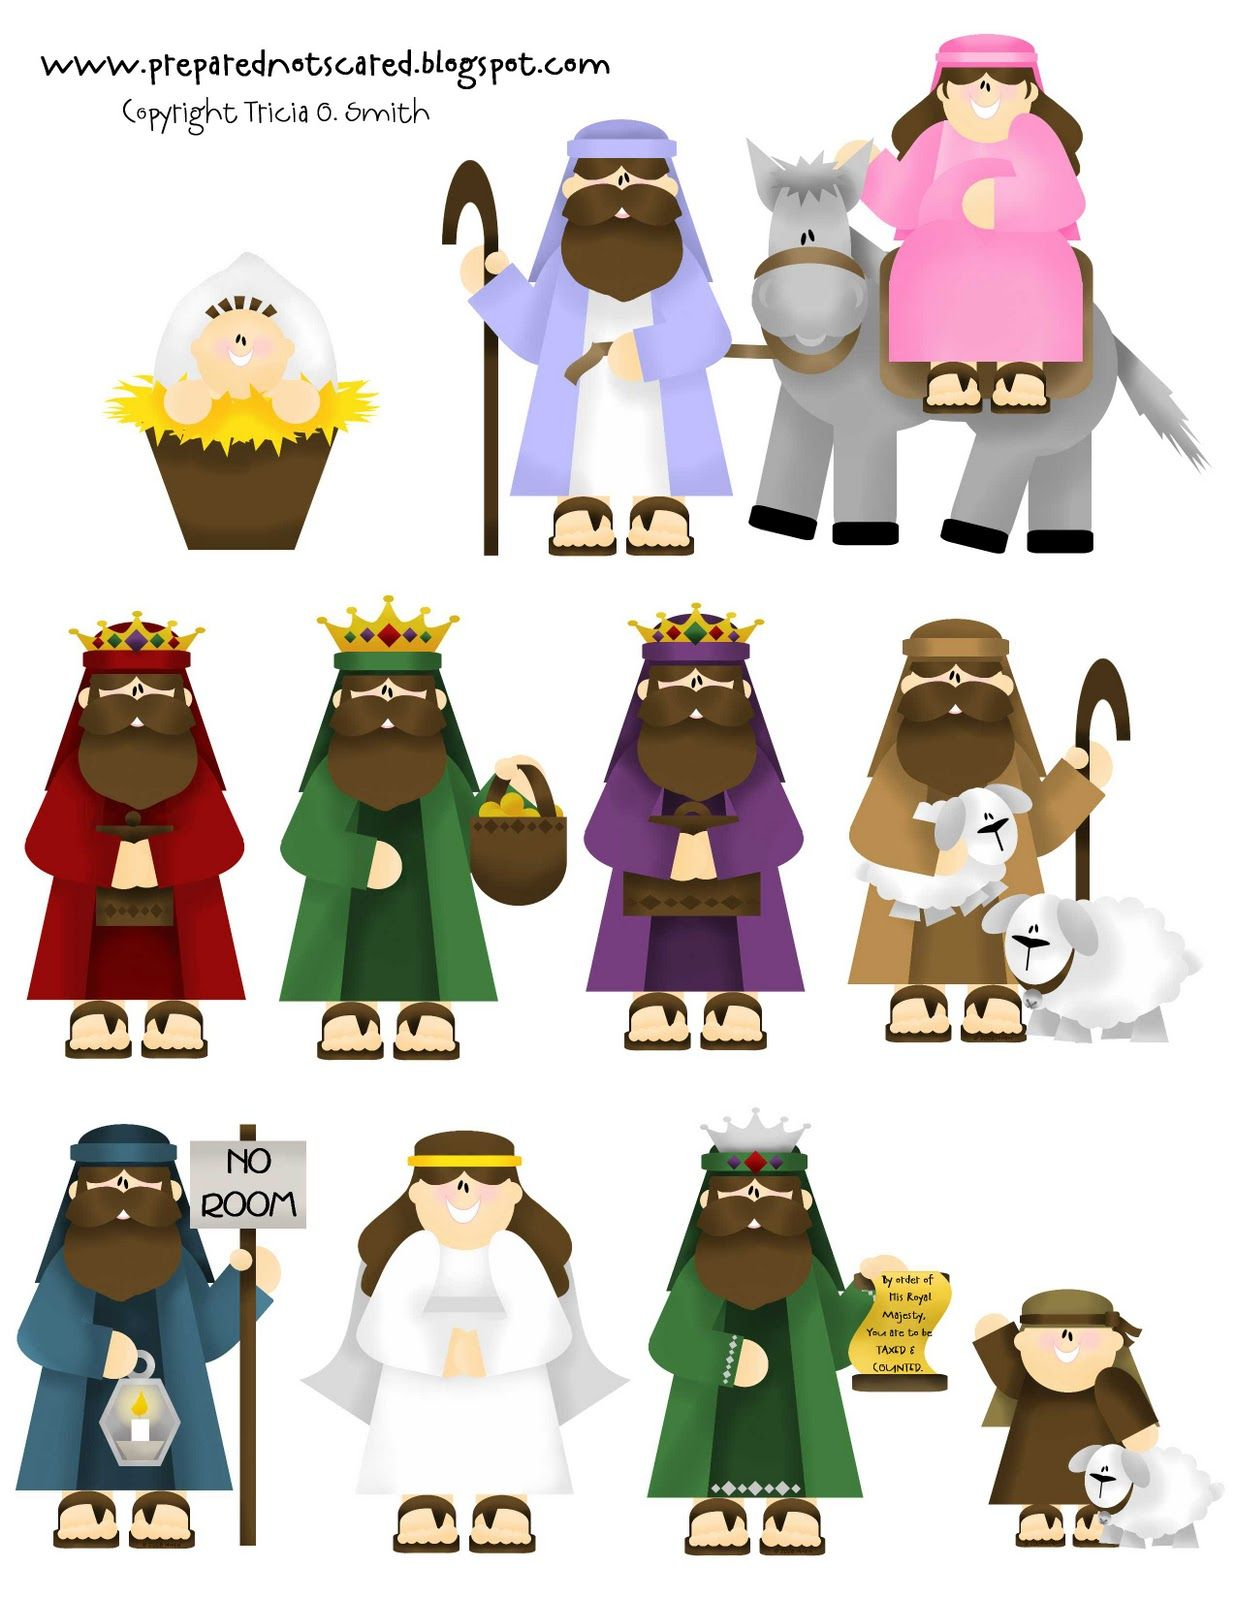 photo regarding Printable Nativity called Printable Nativity mounted. Laminate, glue magnets upon the again